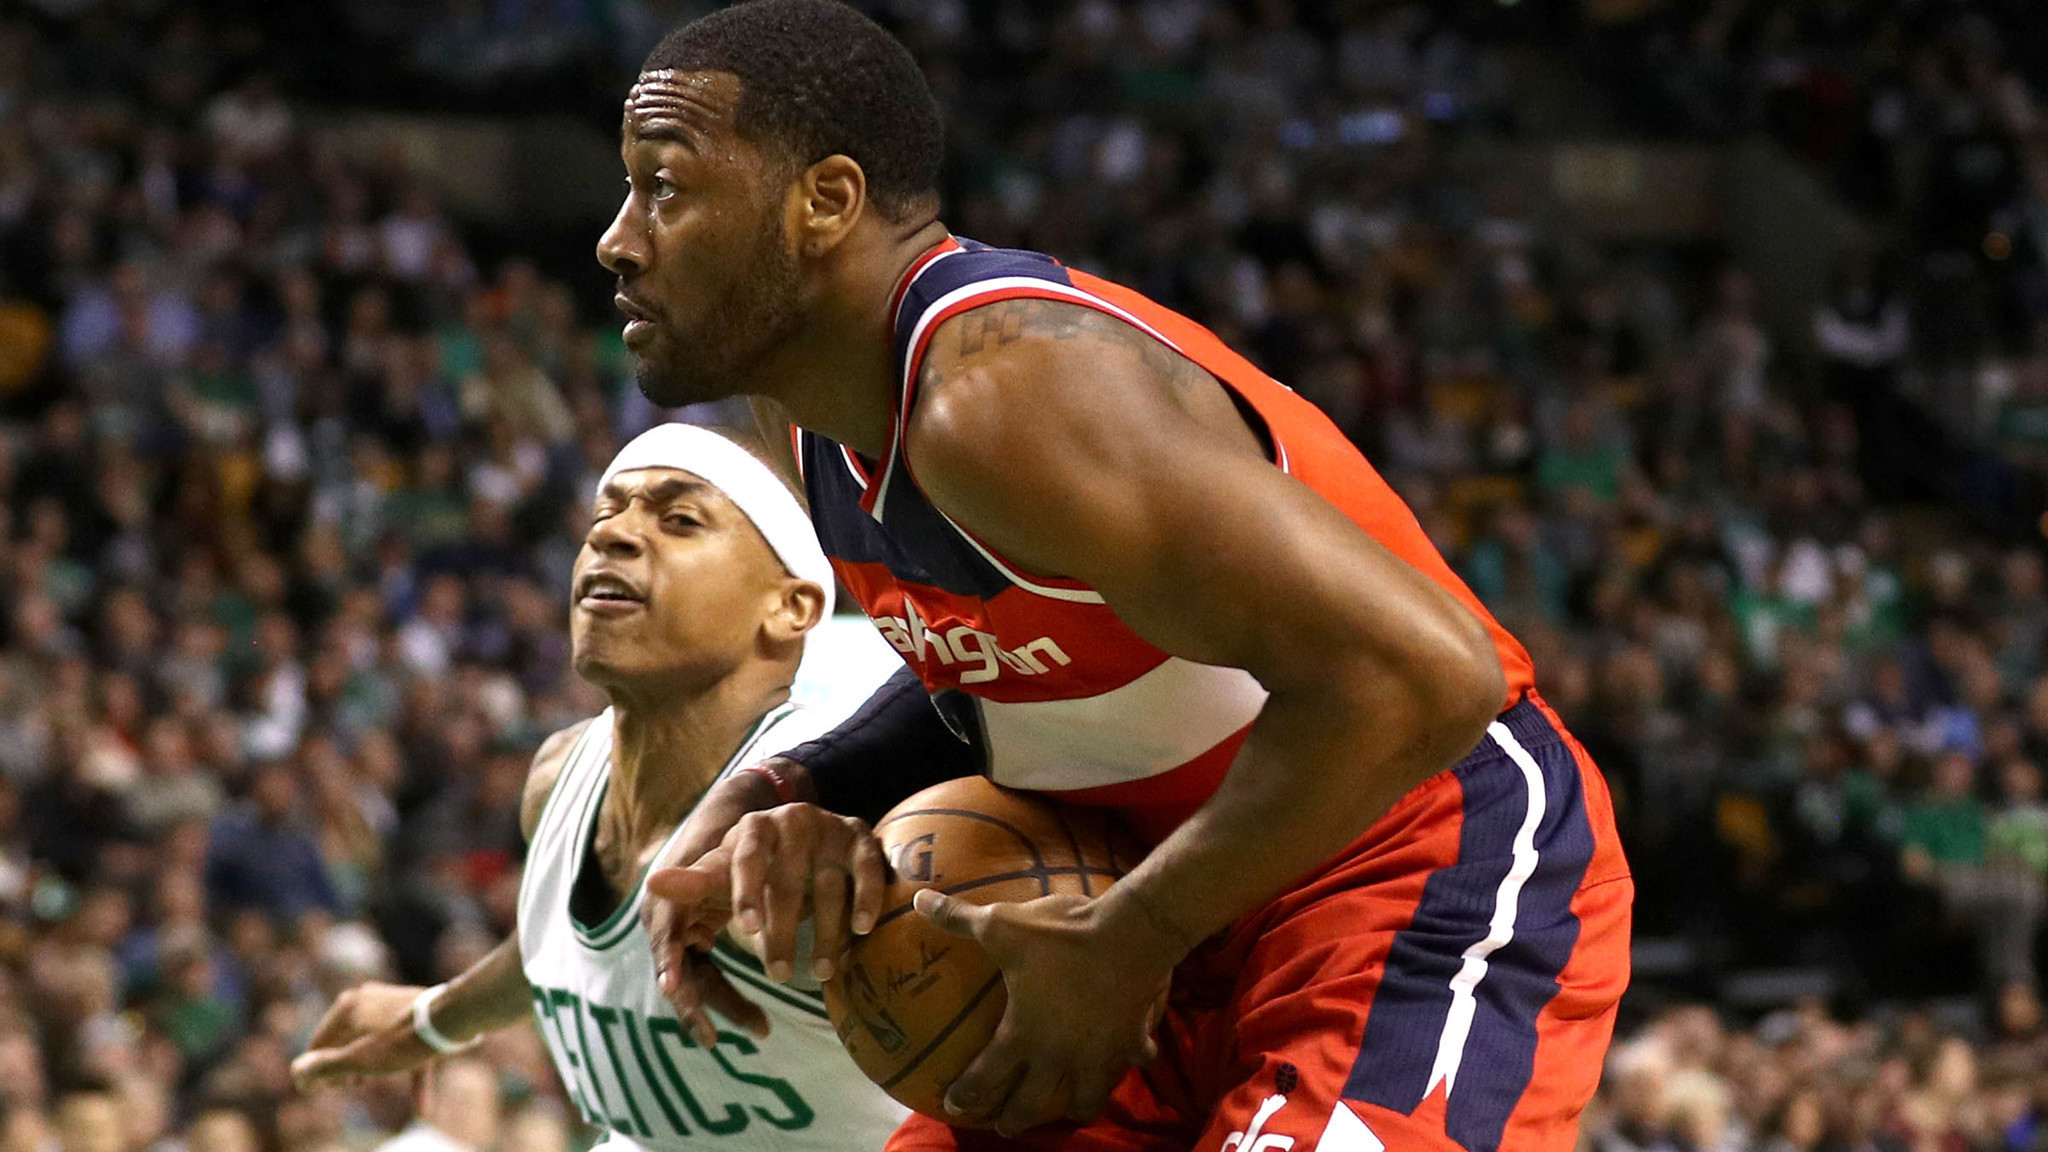 a071409bc9cfc A look at the NBA second-round playoff series between the Boston Celtics  and Washington Wizards. 1. BOSTON 53-29 (home  30-11  road  23-18) vs.